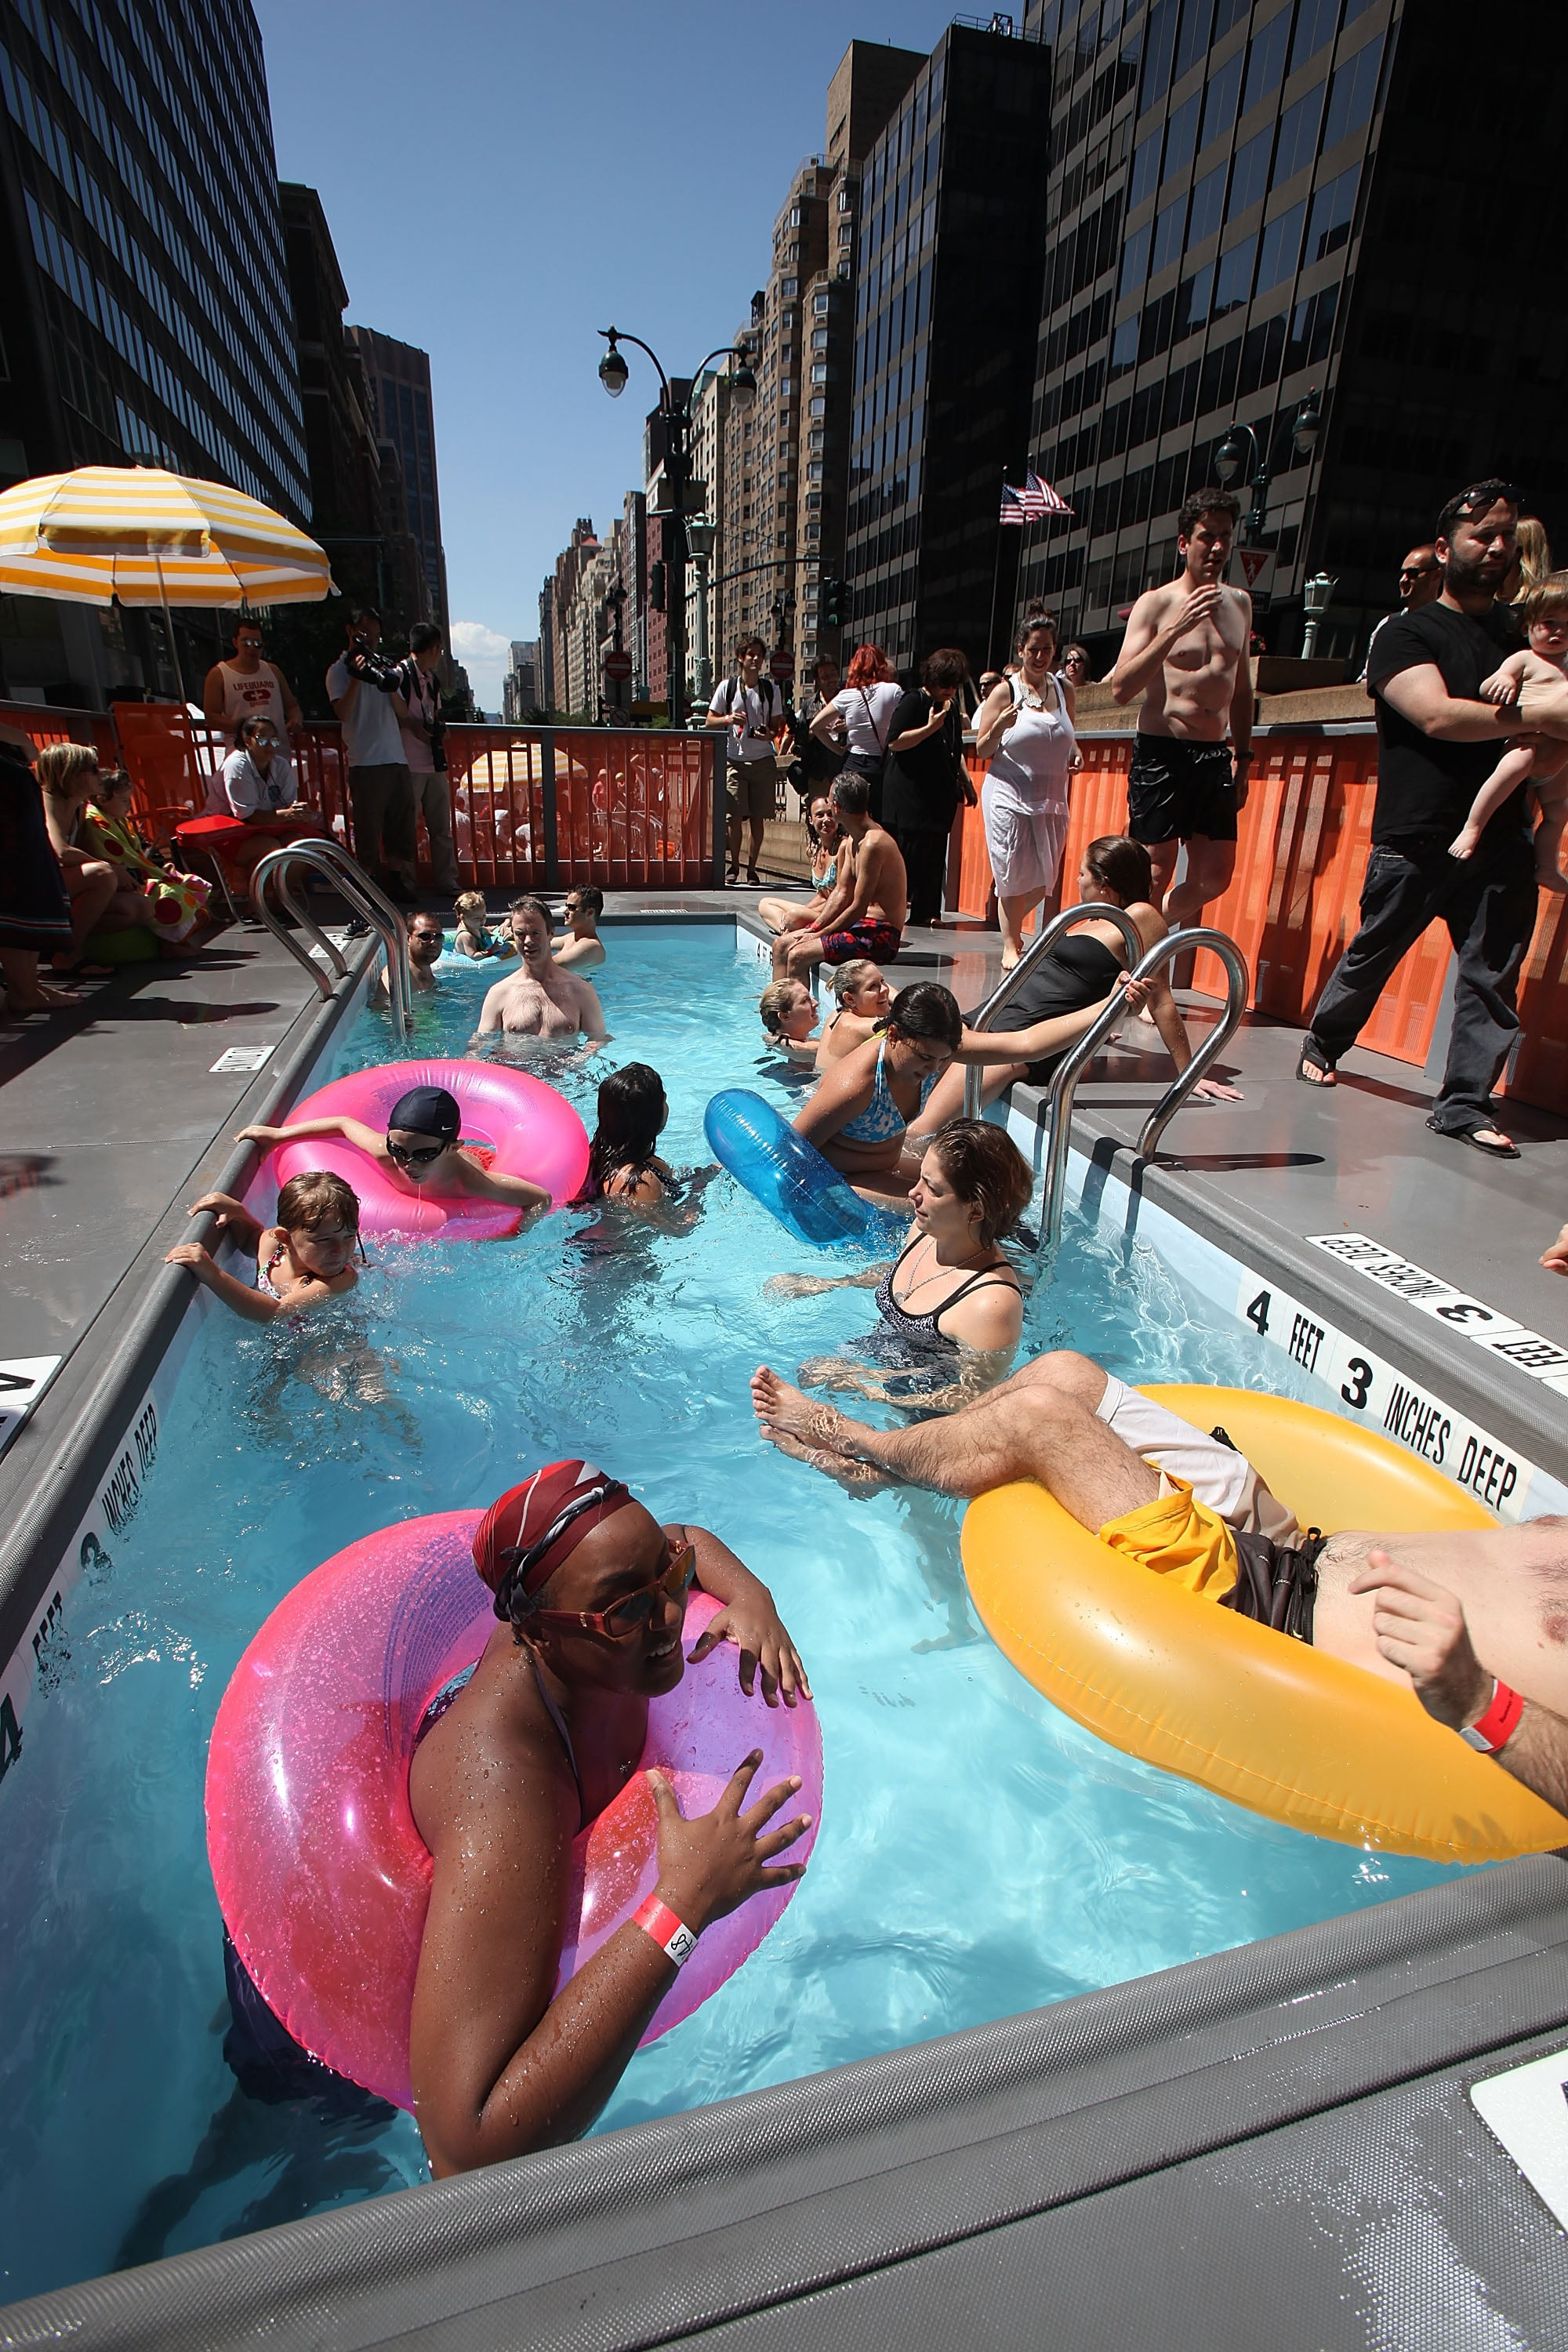 Pictures Of Dumpster Pools In New York City Popsugar Love Sex